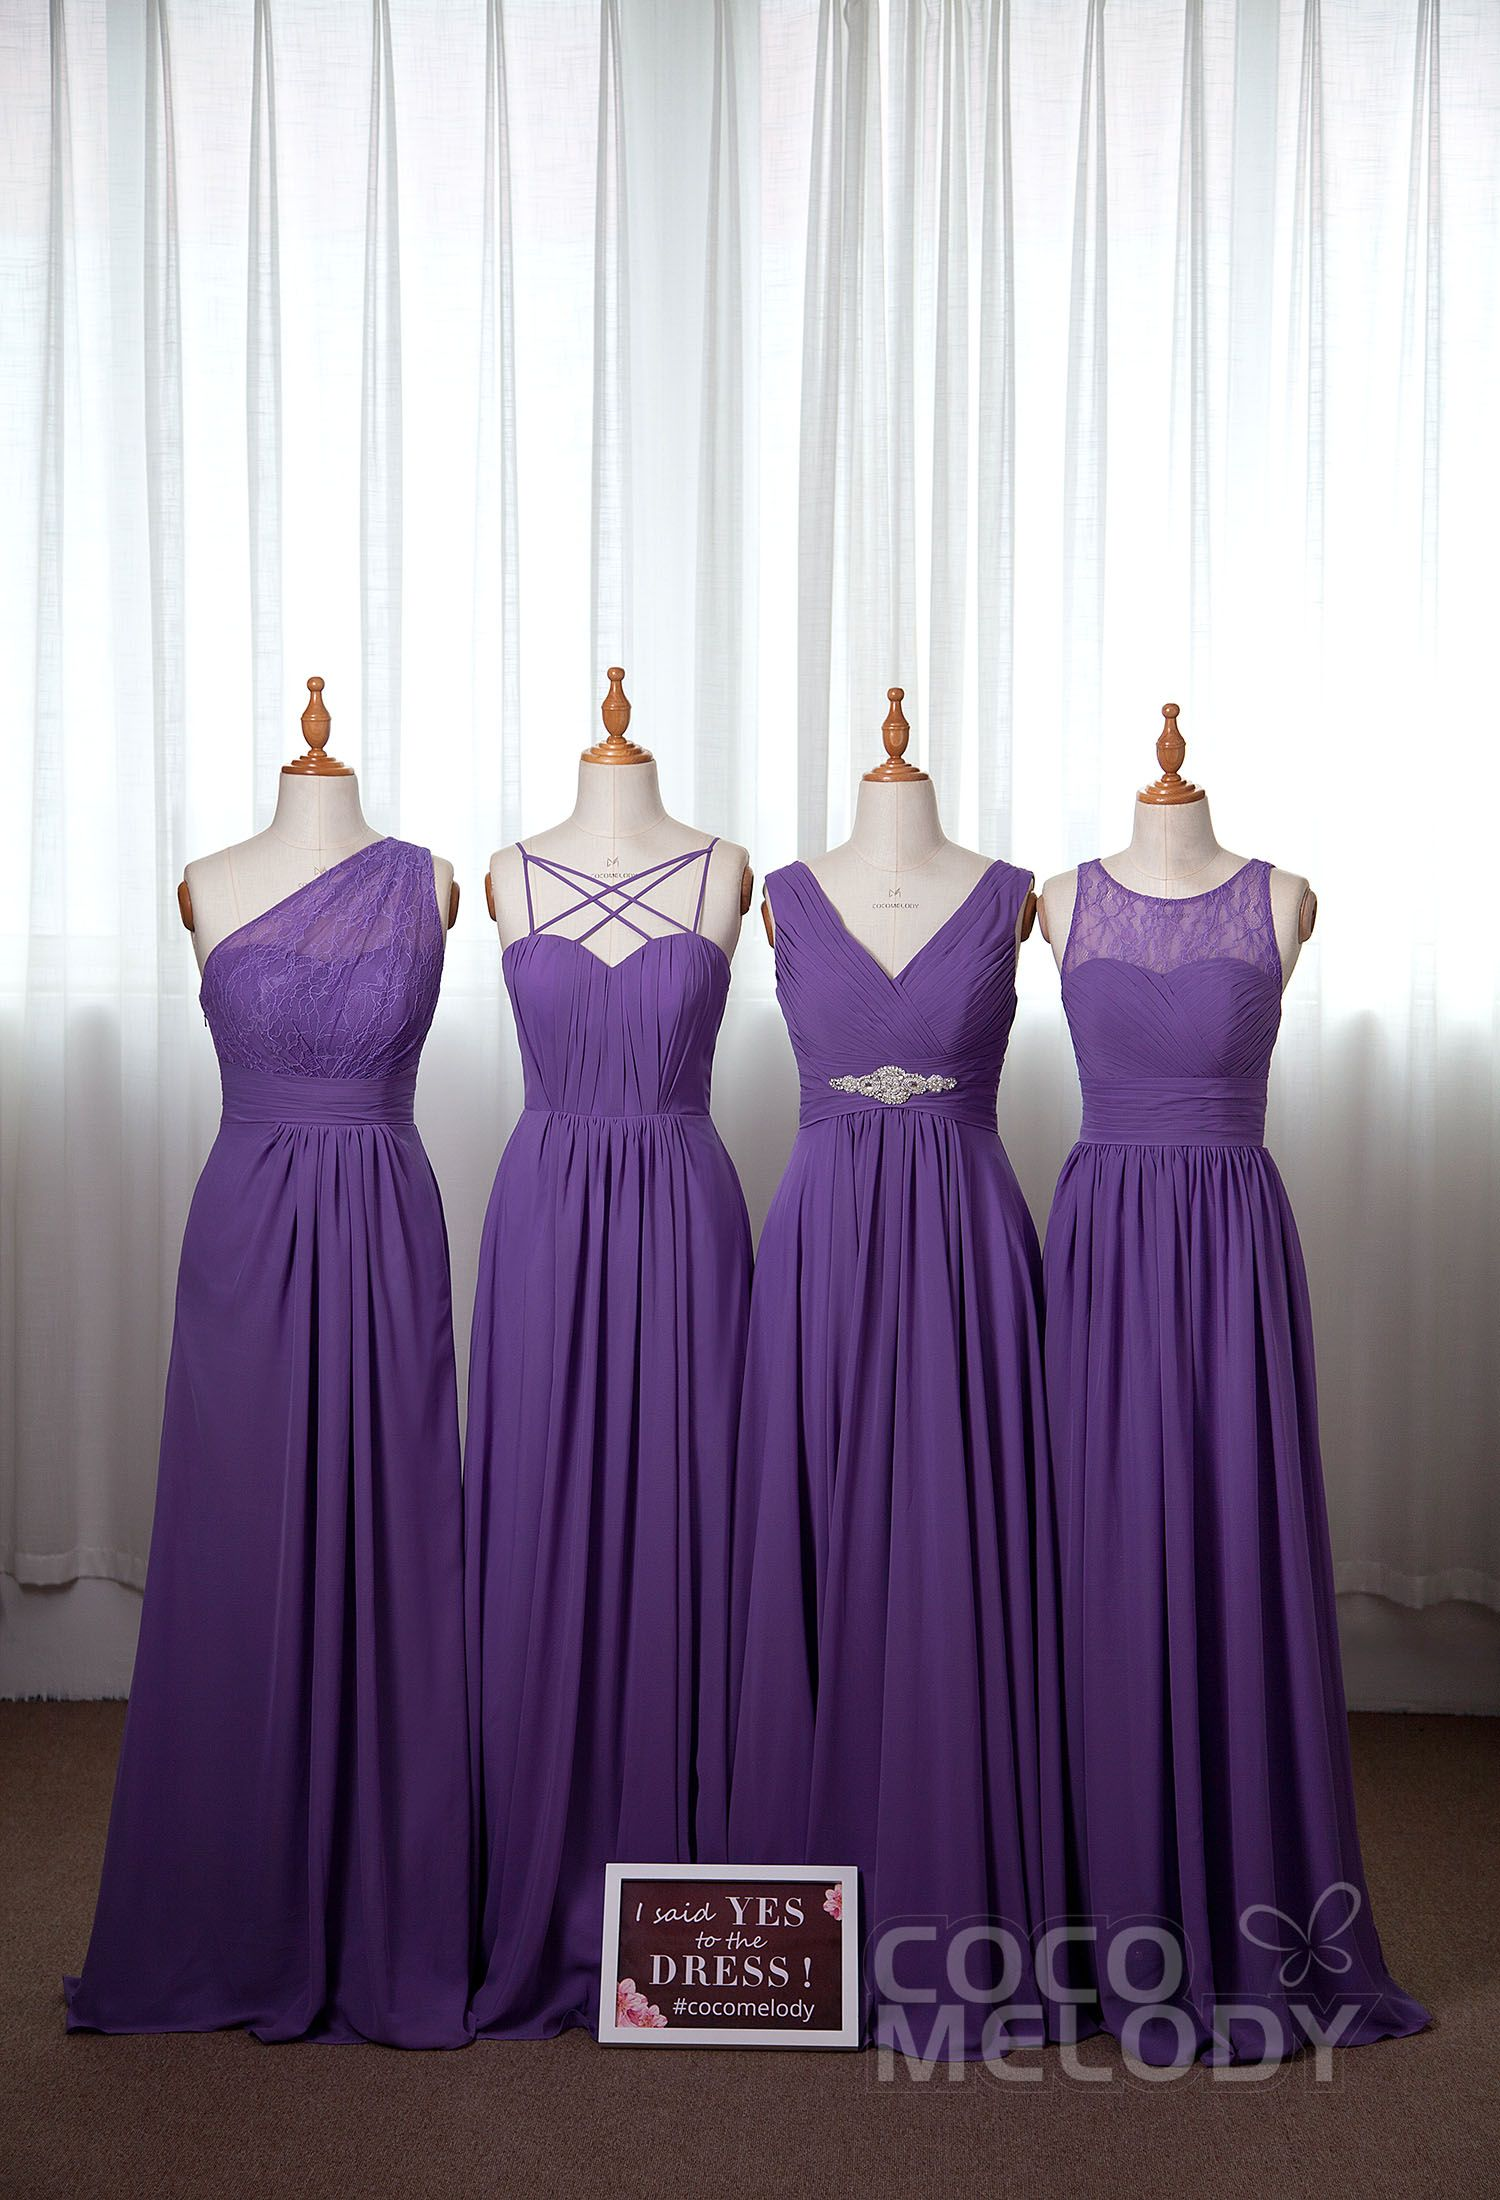 Different Styles But In The Same Popular Purple Color Great Inspiratio Royal Purple Bridesmaid Dress Light Purple Bridesmaid Dresses Purple Bridesmaid Dresses [ 2200 x 1500 Pixel ]